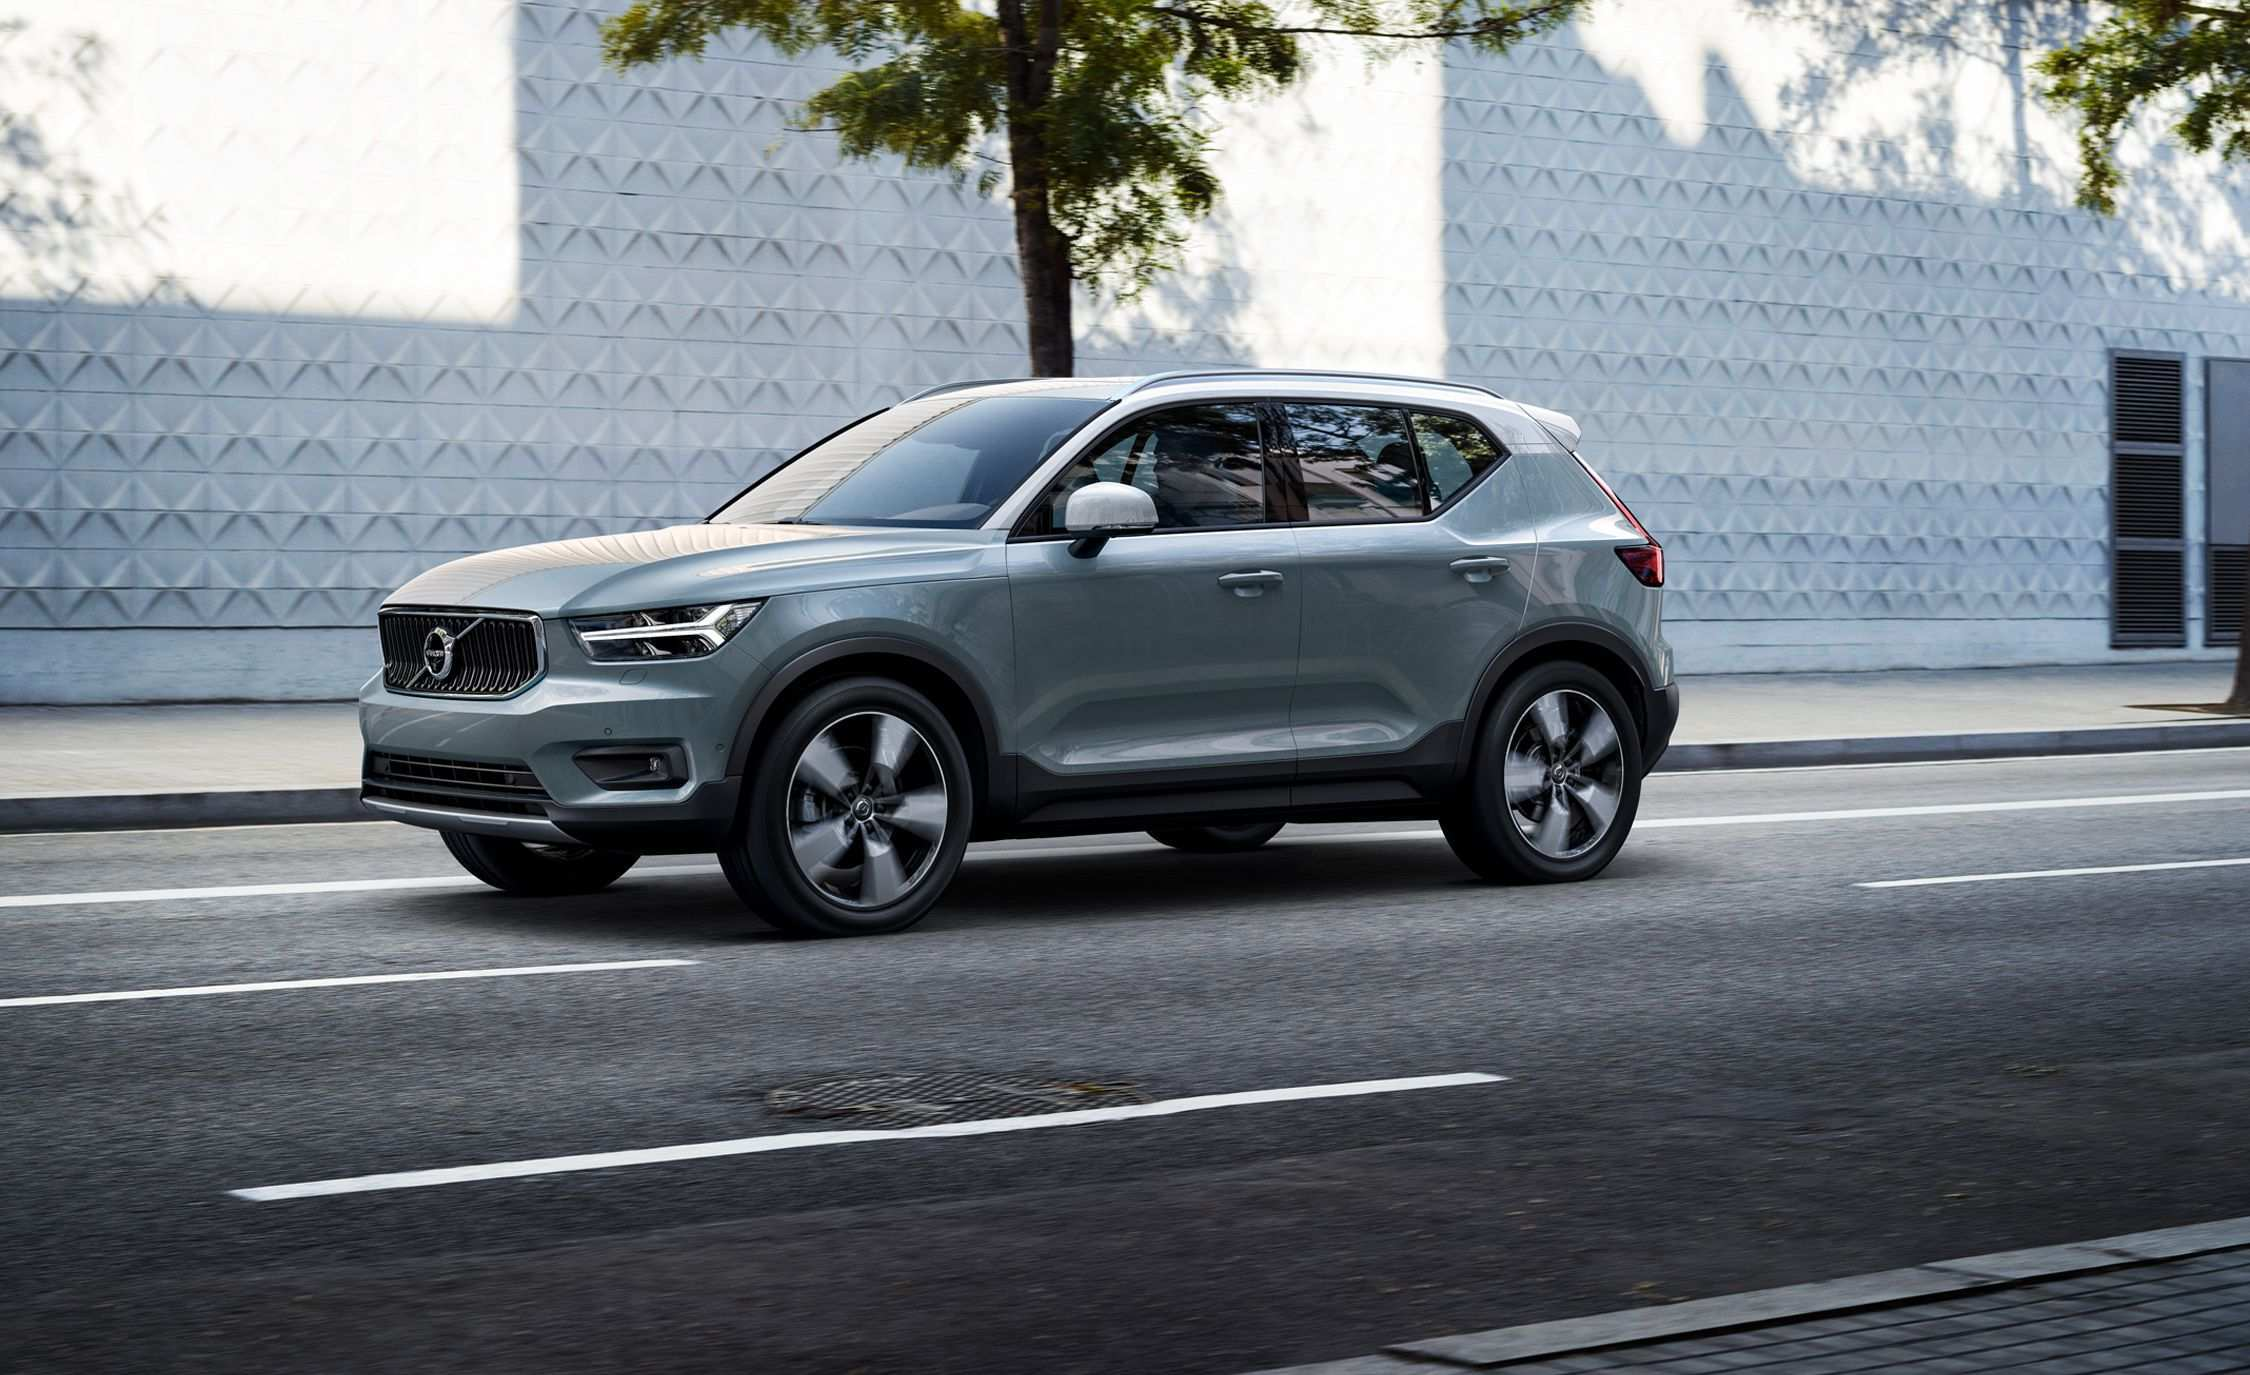 29 Gallery of Volvo Xc40 Dimensions 2019 Style with Volvo Xc40 Dimensions 2019